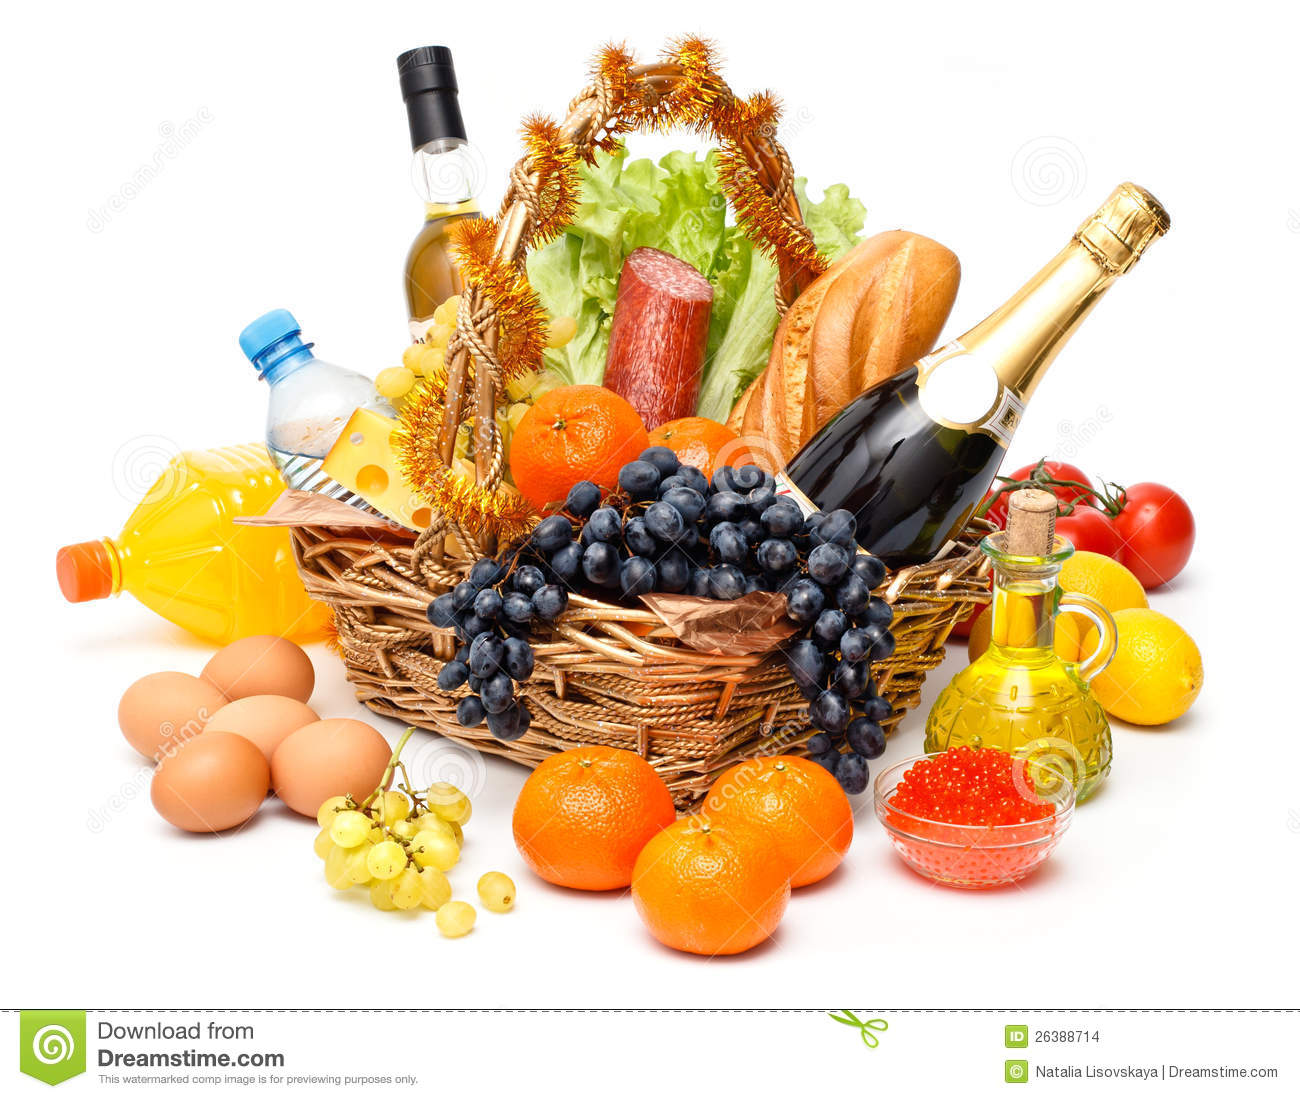 Christmas Basket Of Goods Stock Images - Image: 26388714